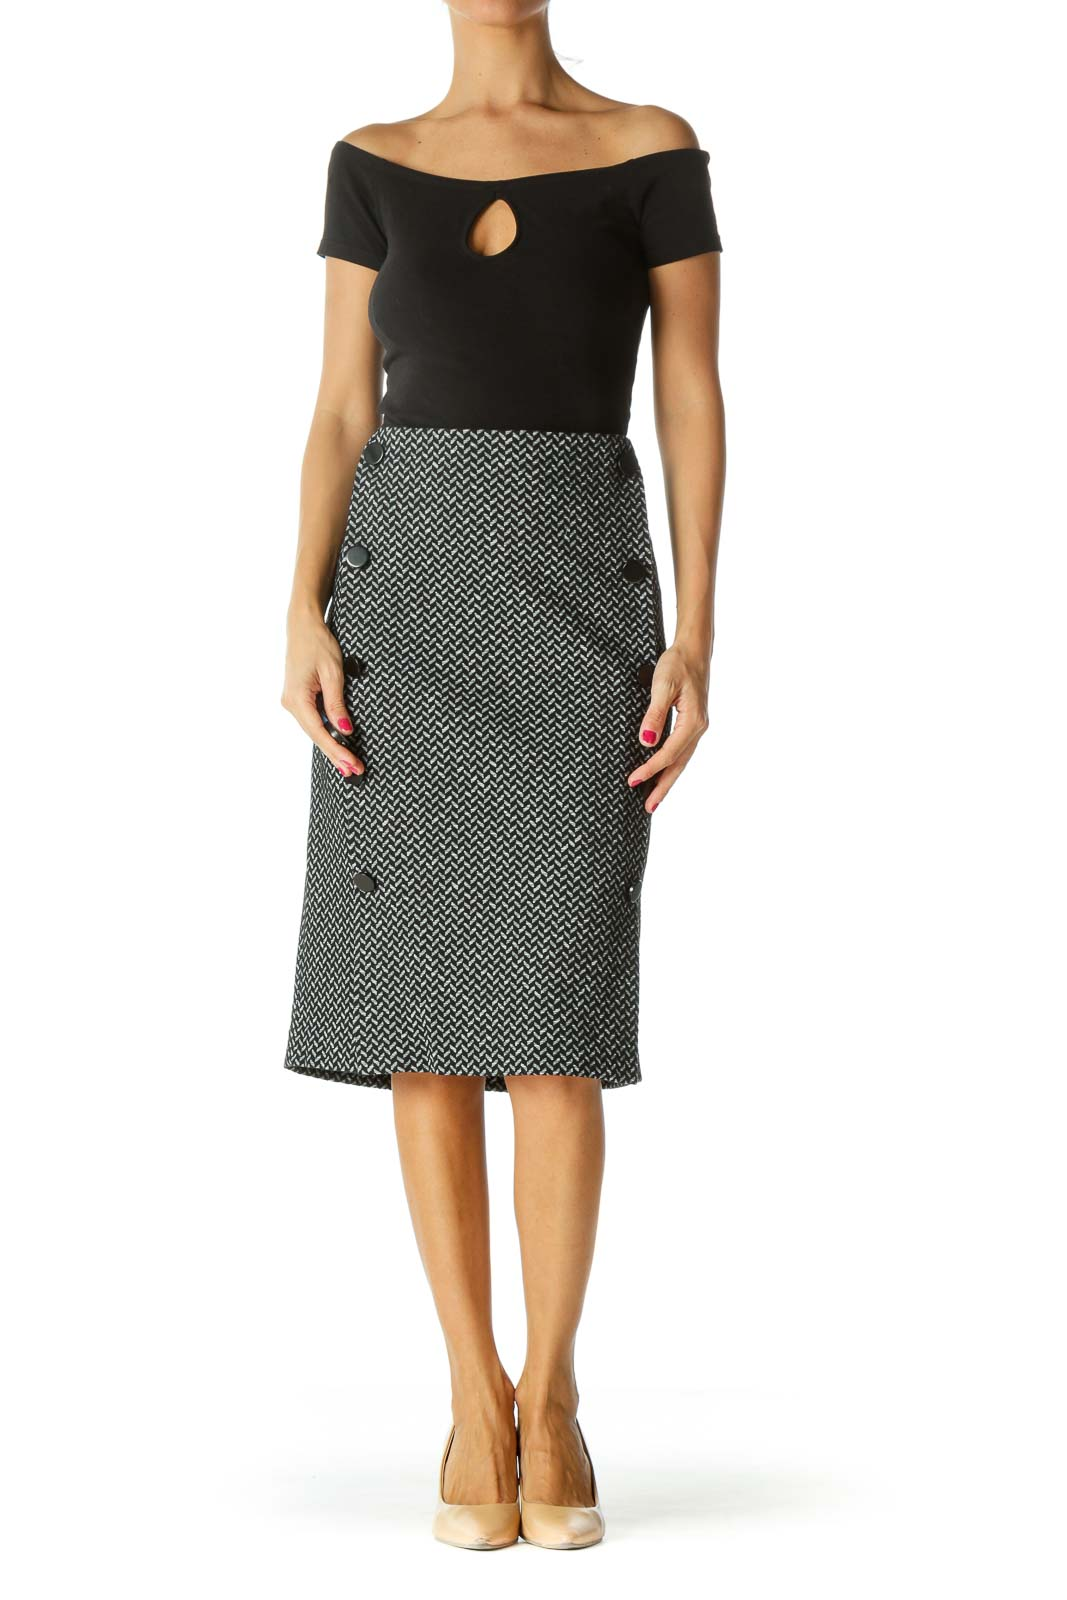 Black White Buttoned Zippered Textured Midi Skirt